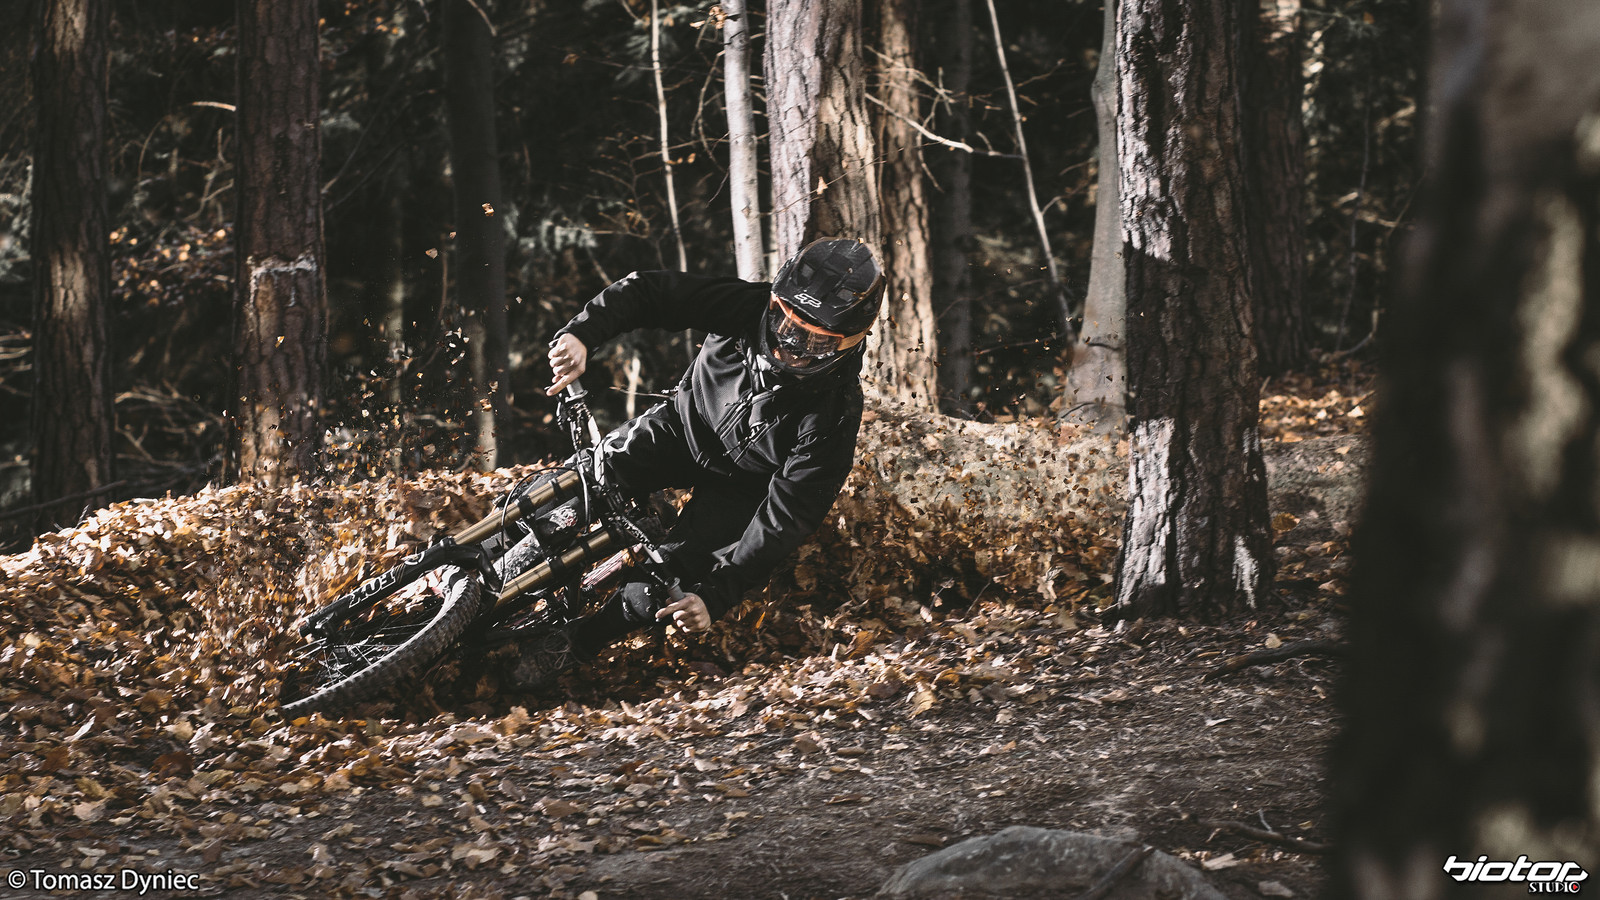 Autumn shot - Tomasz_Dyniec - Mountain Biking Pictures - Vital MTB